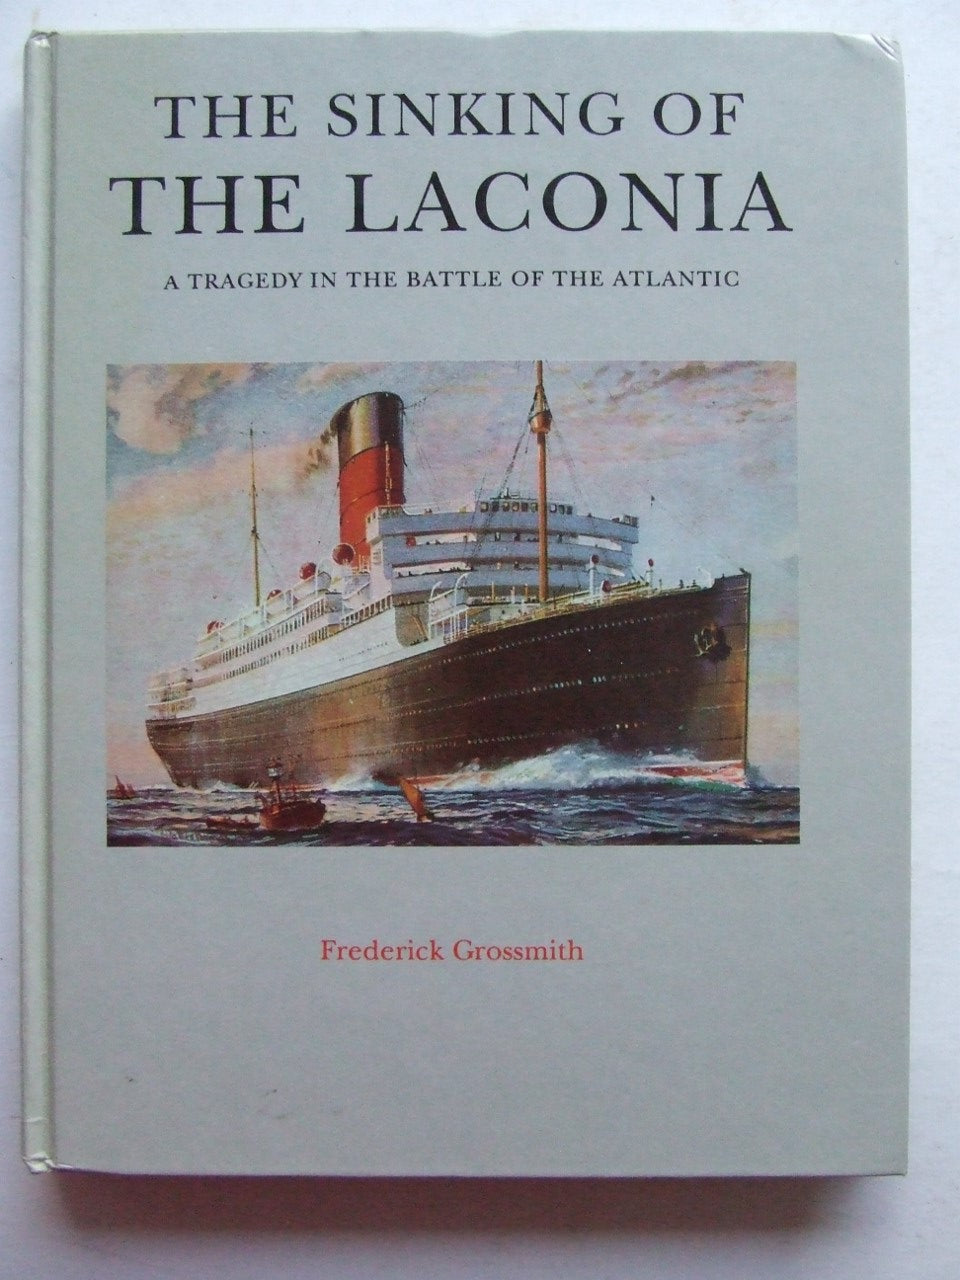 Sinking of the Laconia, a tragedy in the Battle of the Atlantic